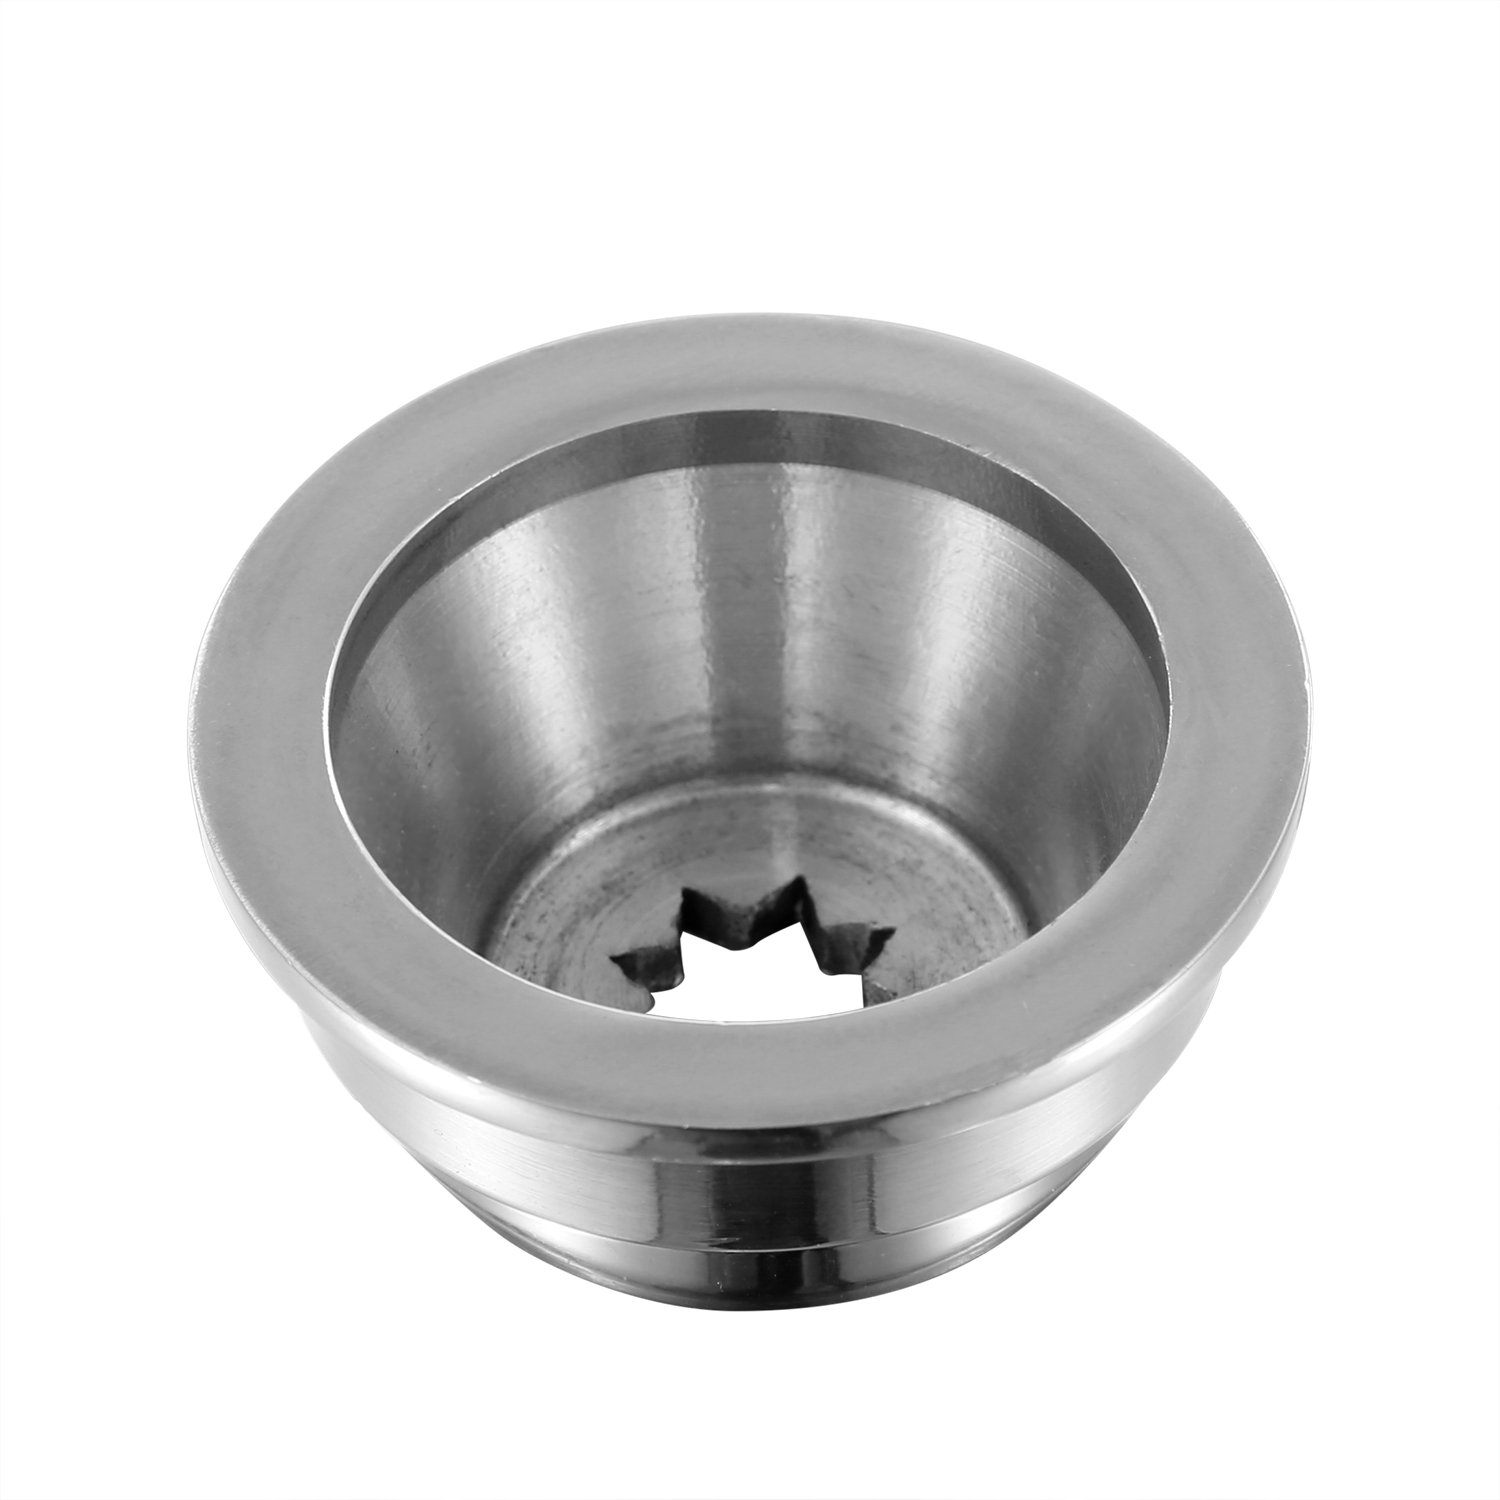 3 Sizes Stainless Steel Hollow Churro Nozzles Attachment for Spanish Churro Maker Machines